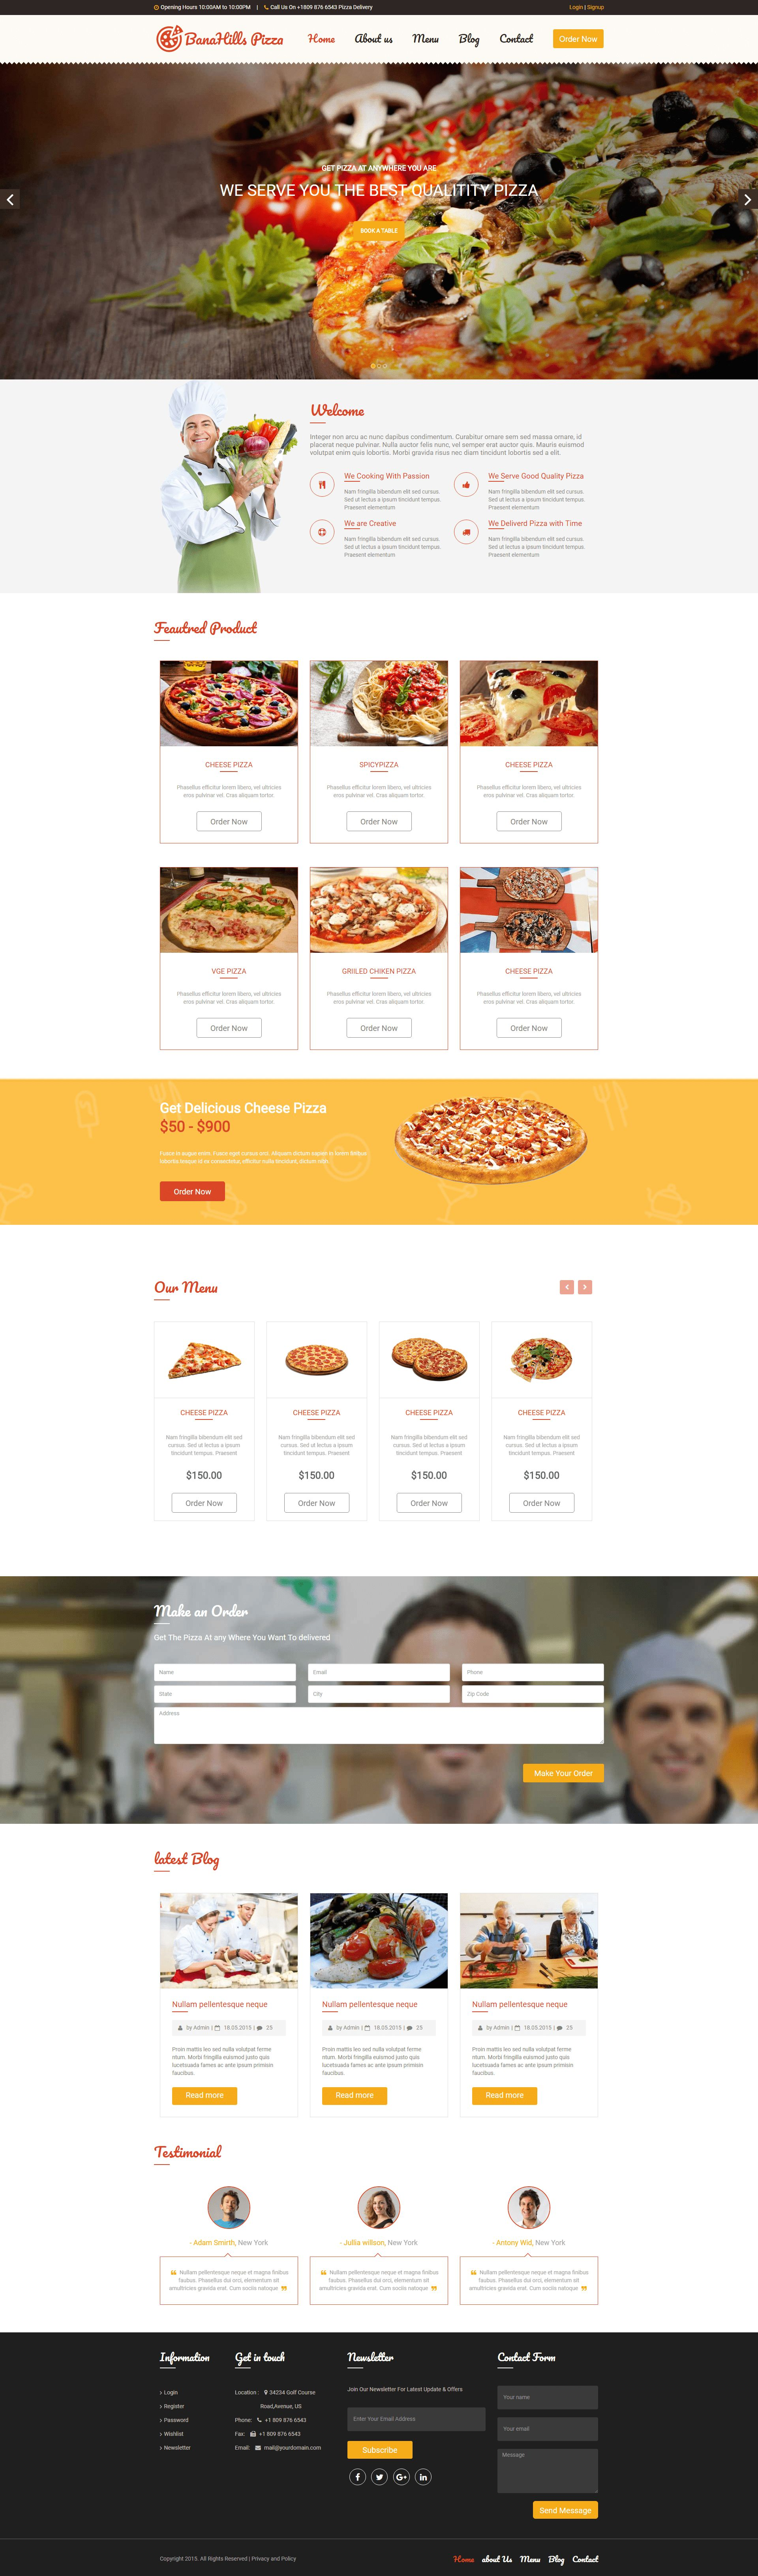 Pizza - Restaurant Table Booking HTML Template Screenshot 2